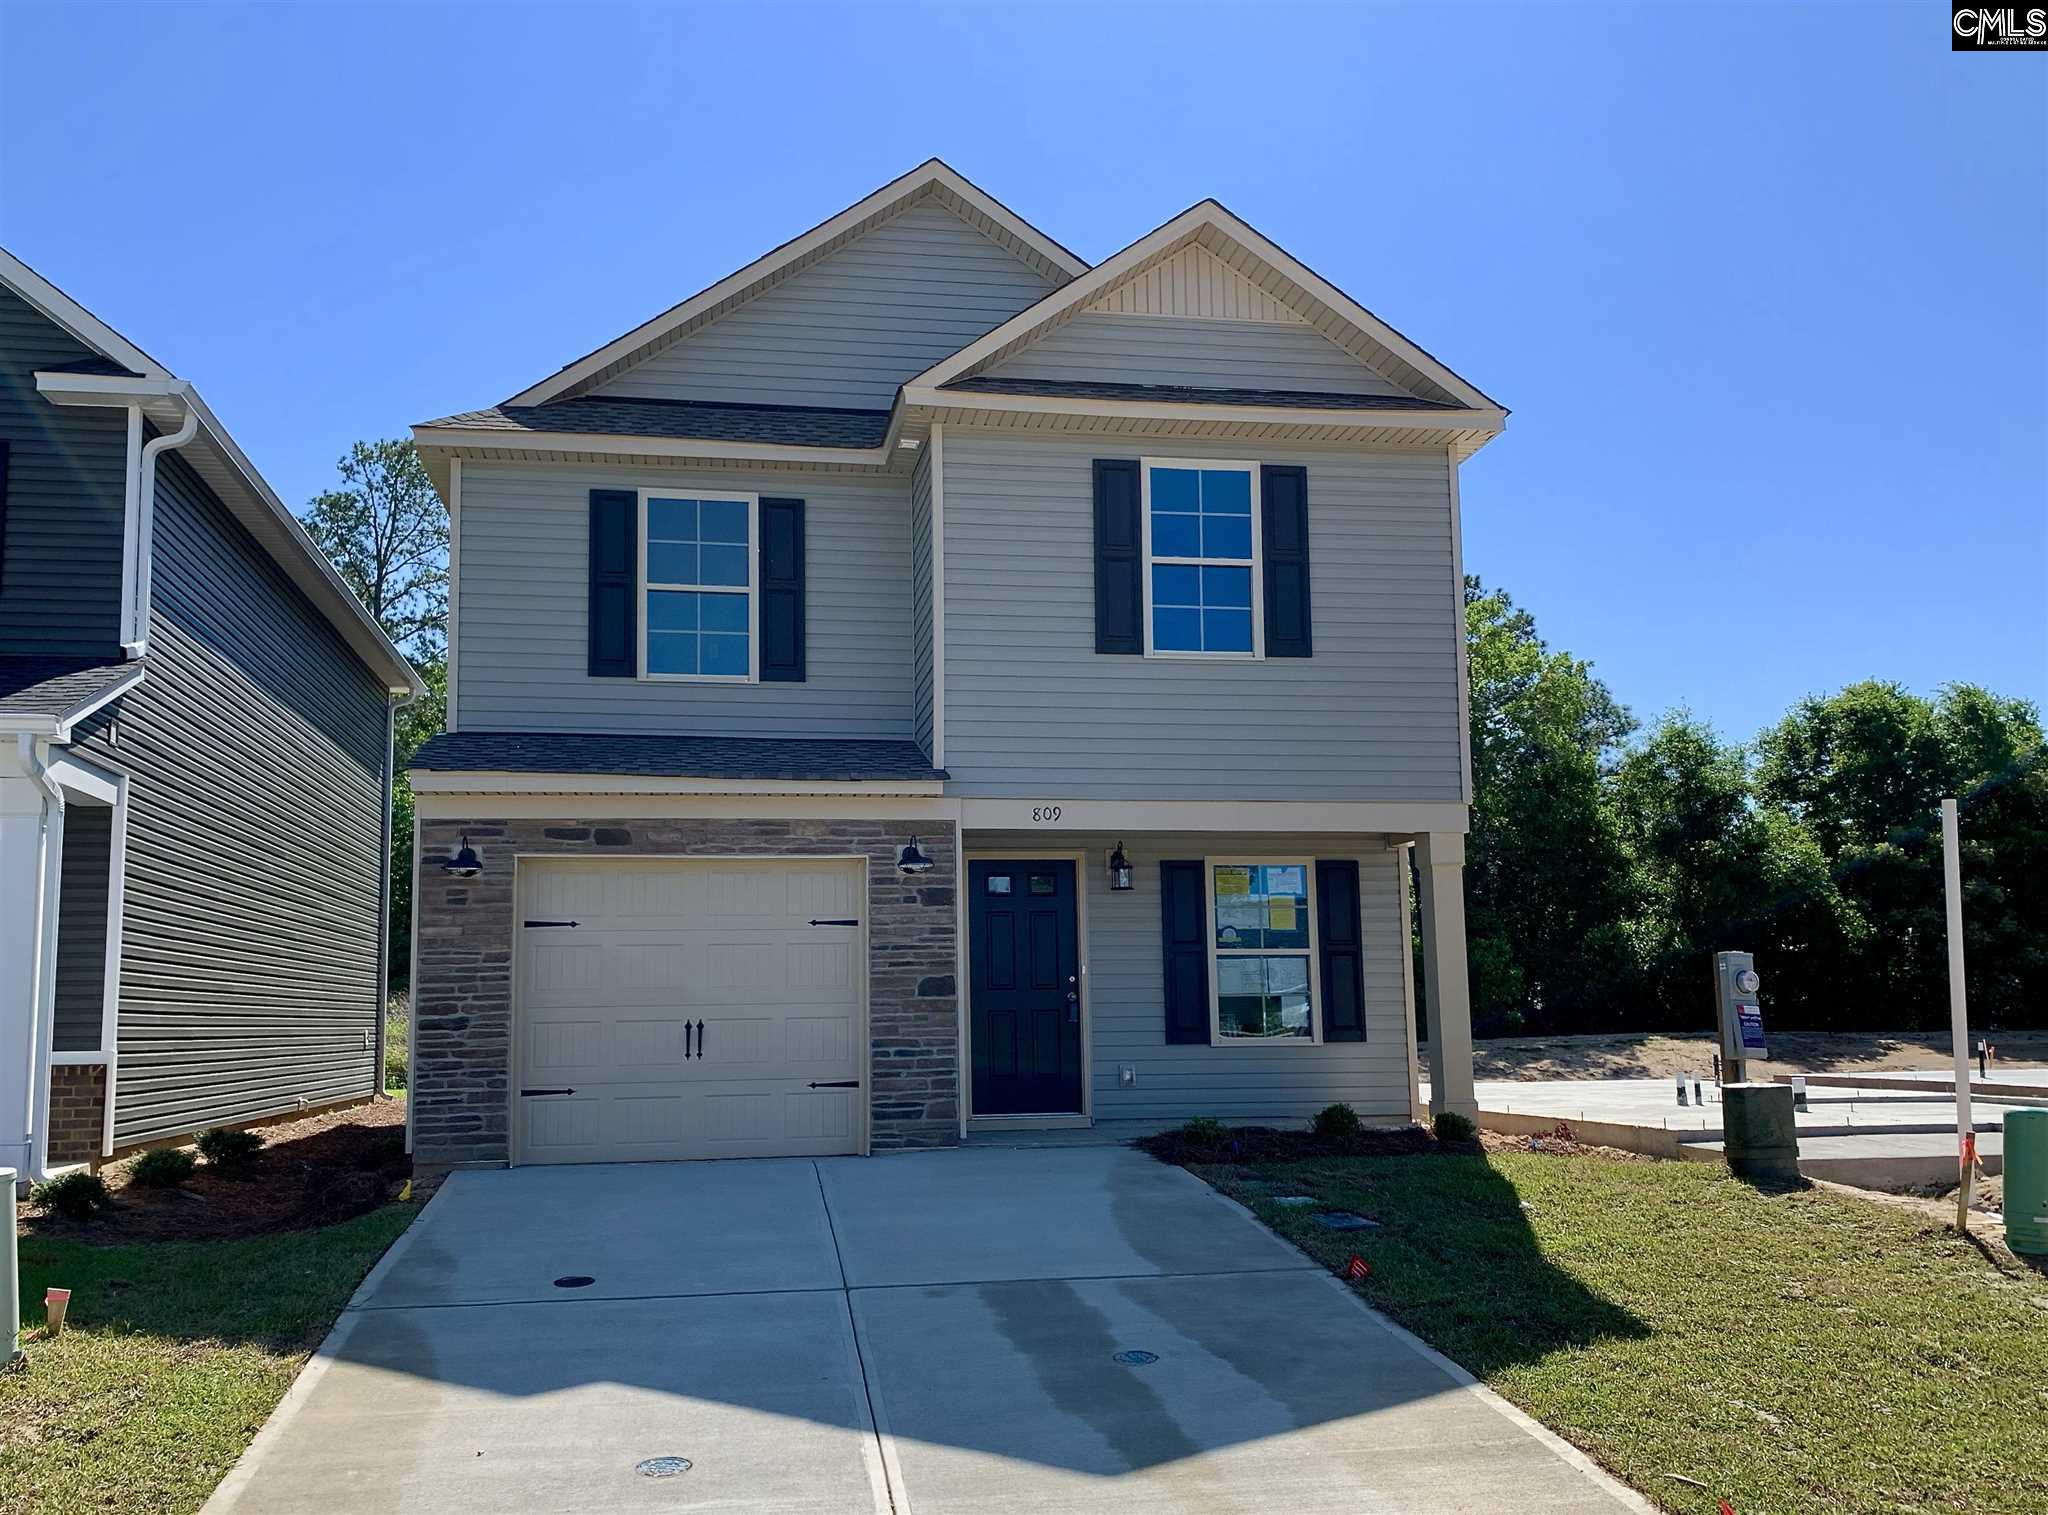 809 Dawsons Park Lexington, SC 29072